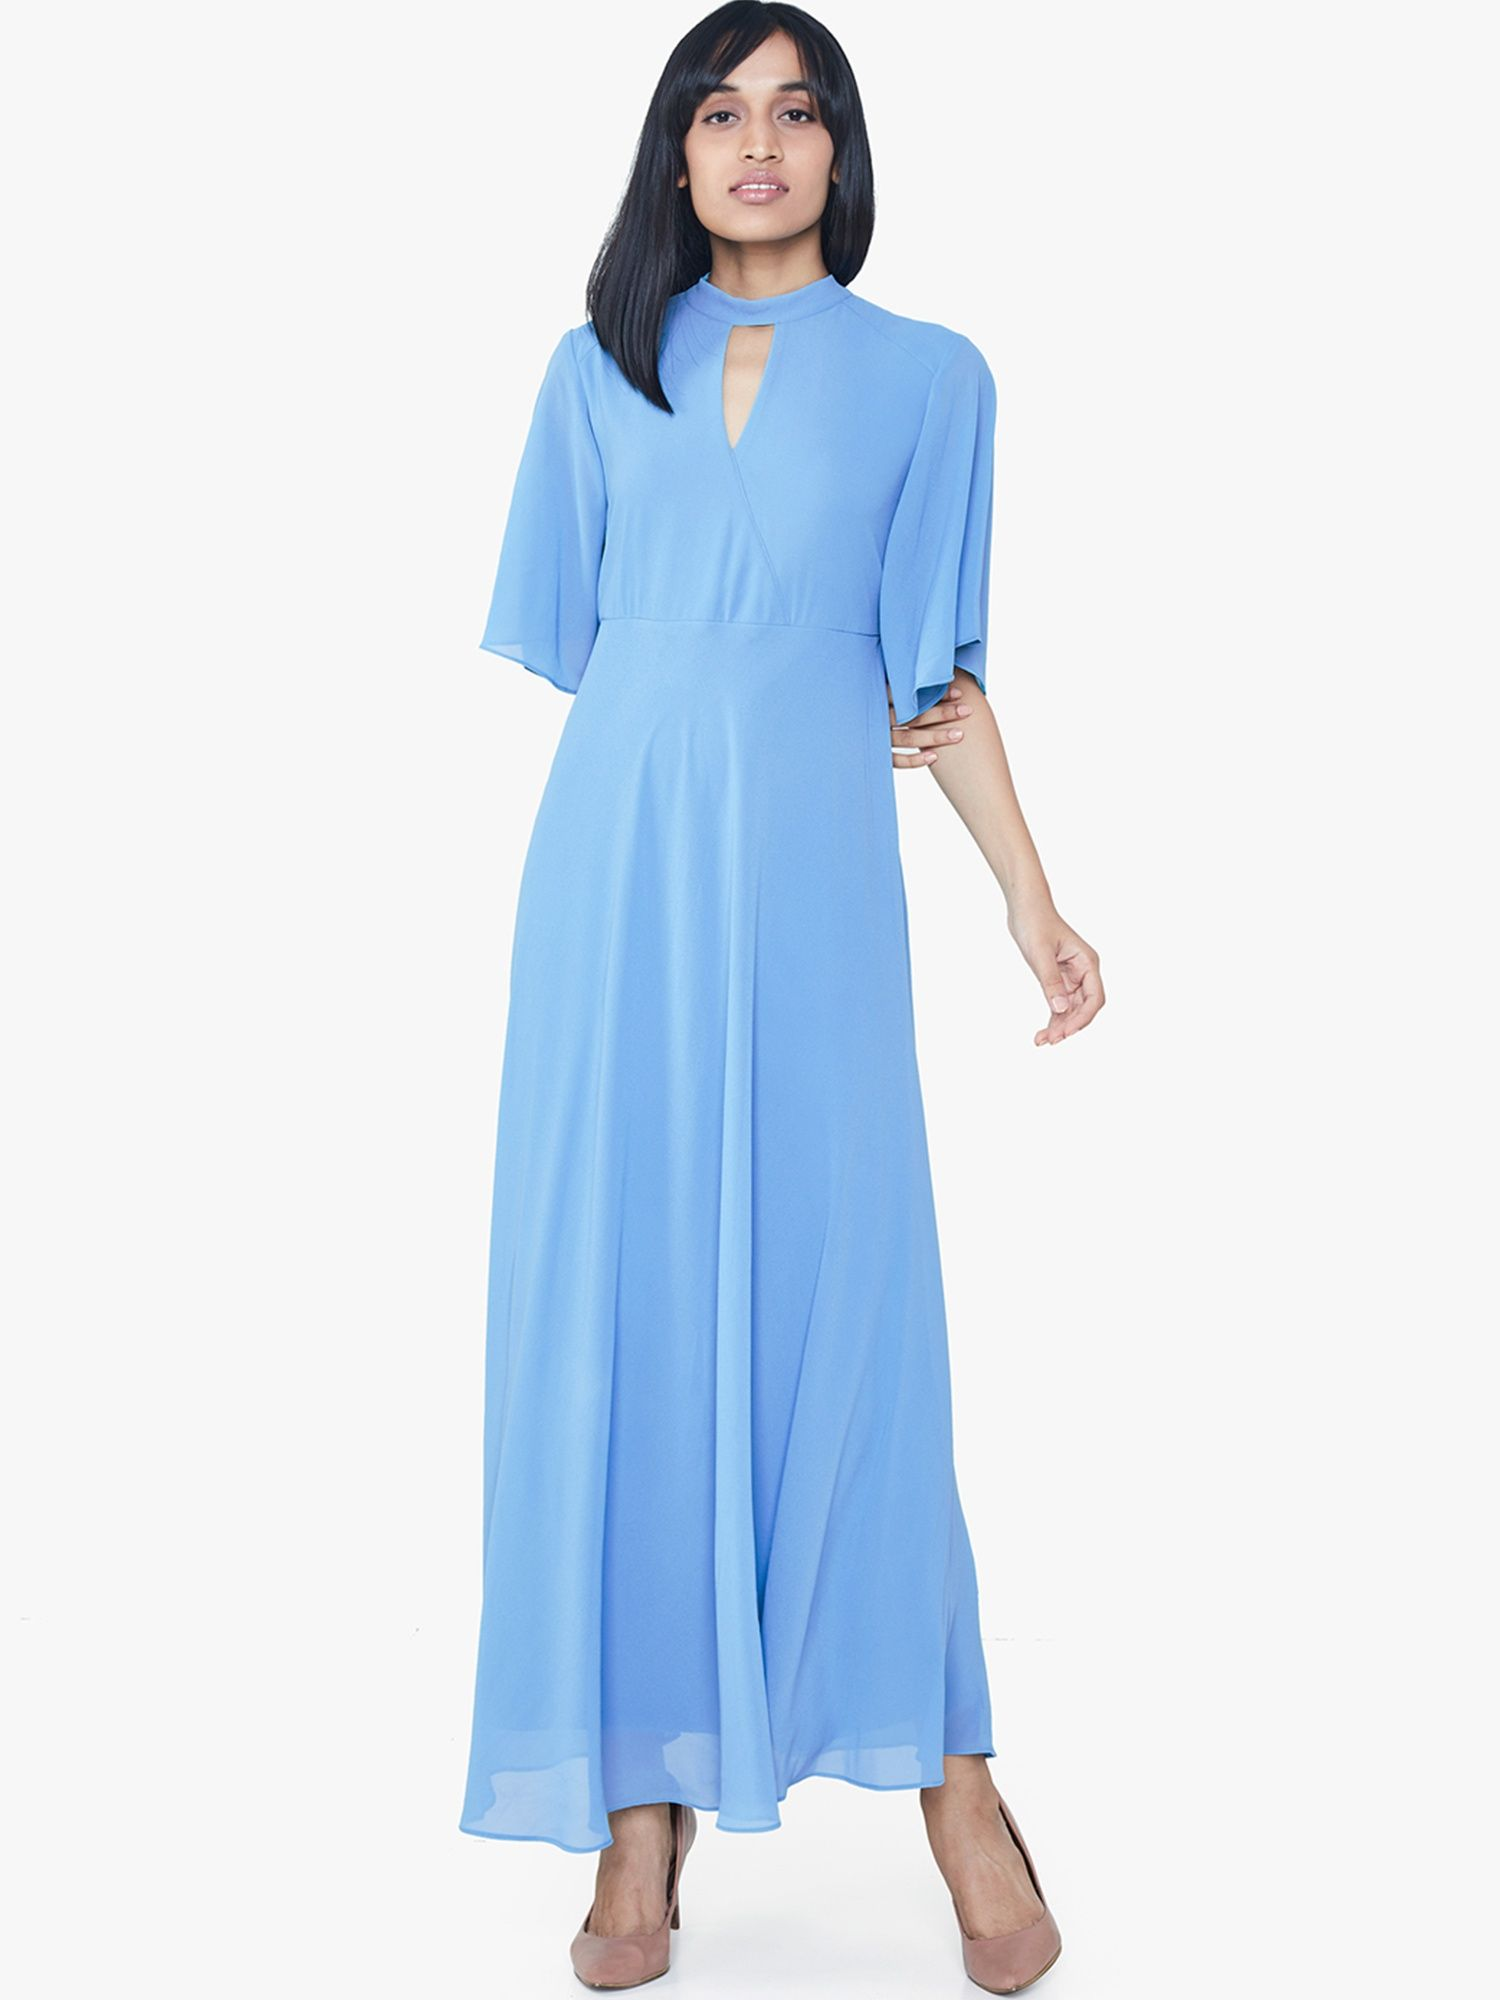 140e306259 AND Gowns   Buy AND Powder Blue Maxi Dress Online